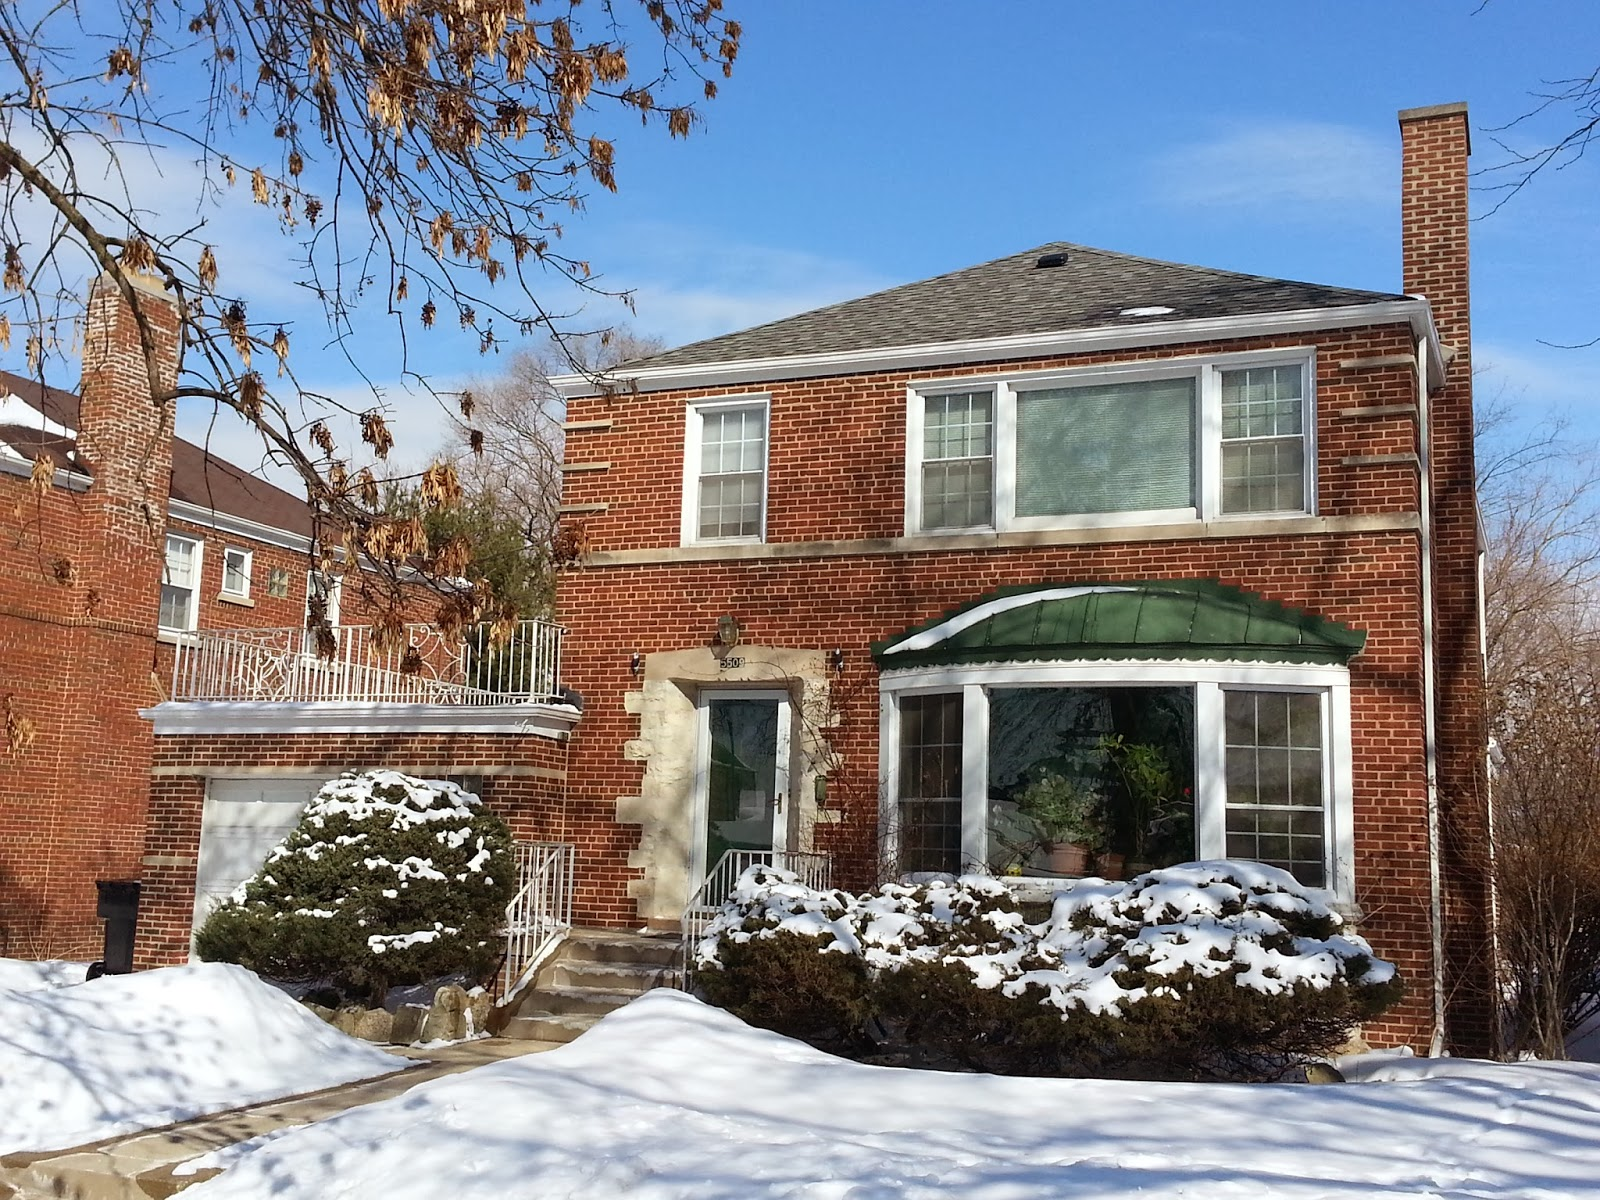 The chicago real estate local budlong woods home sales in for Georgian house